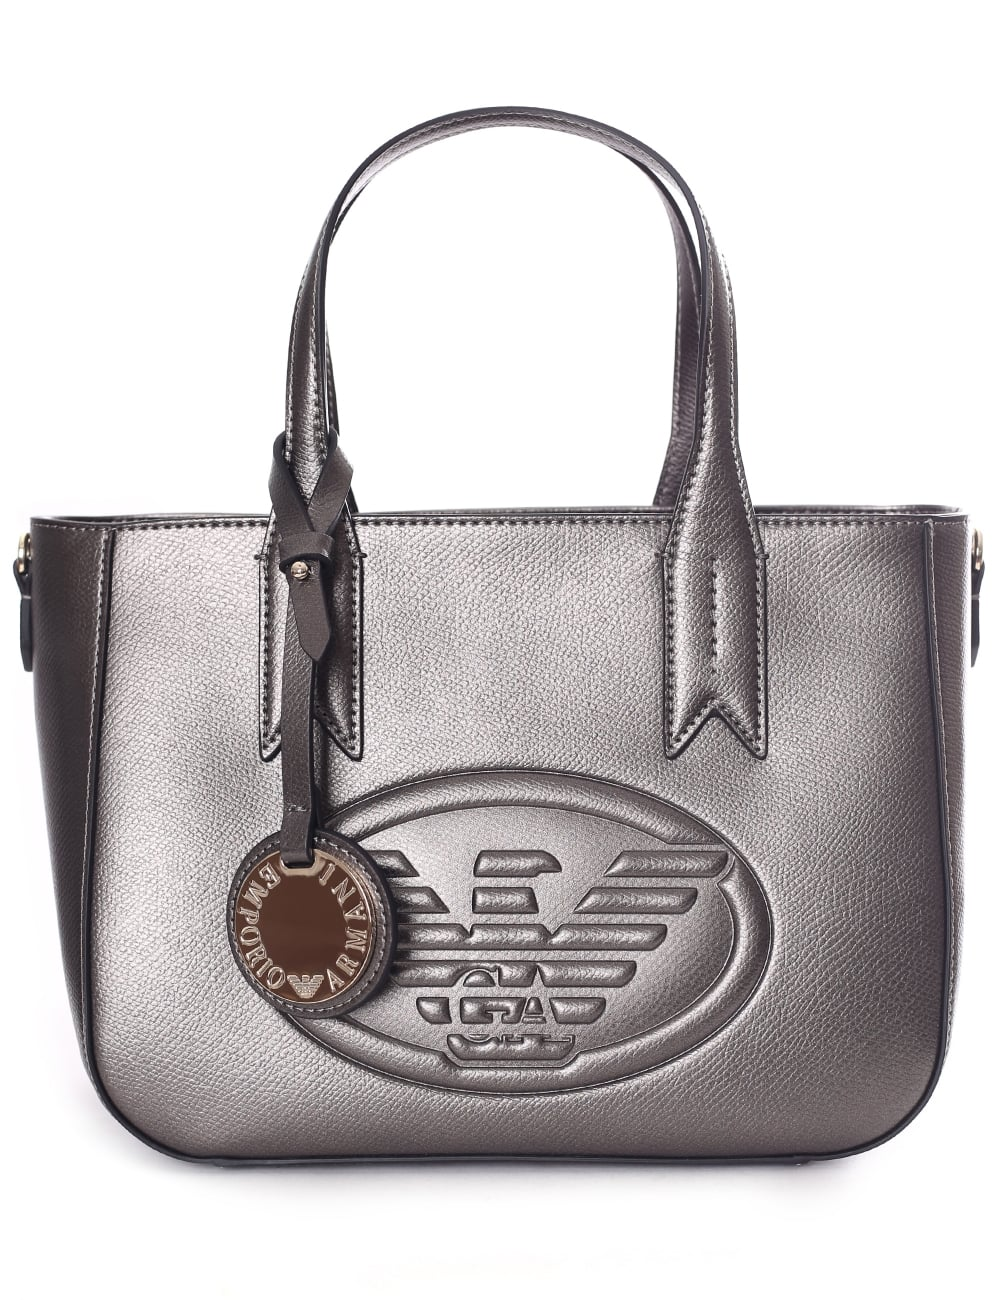 4a0730f457a6 Armani Jeans Women s Eagle Logo Mini Shopper